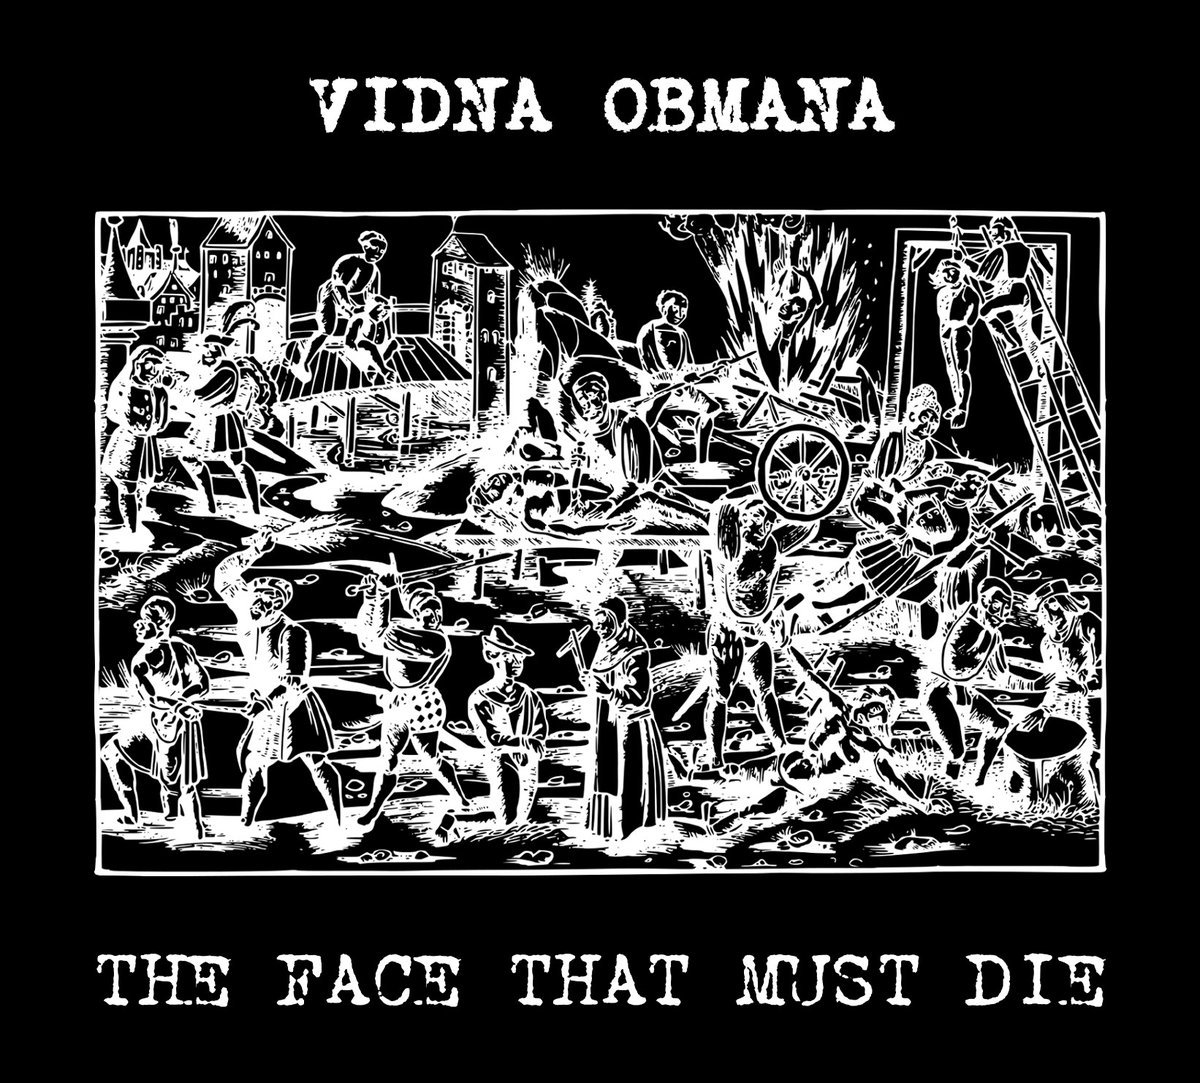 Vidna Obmana - The Face That Must Die CD - 画像1